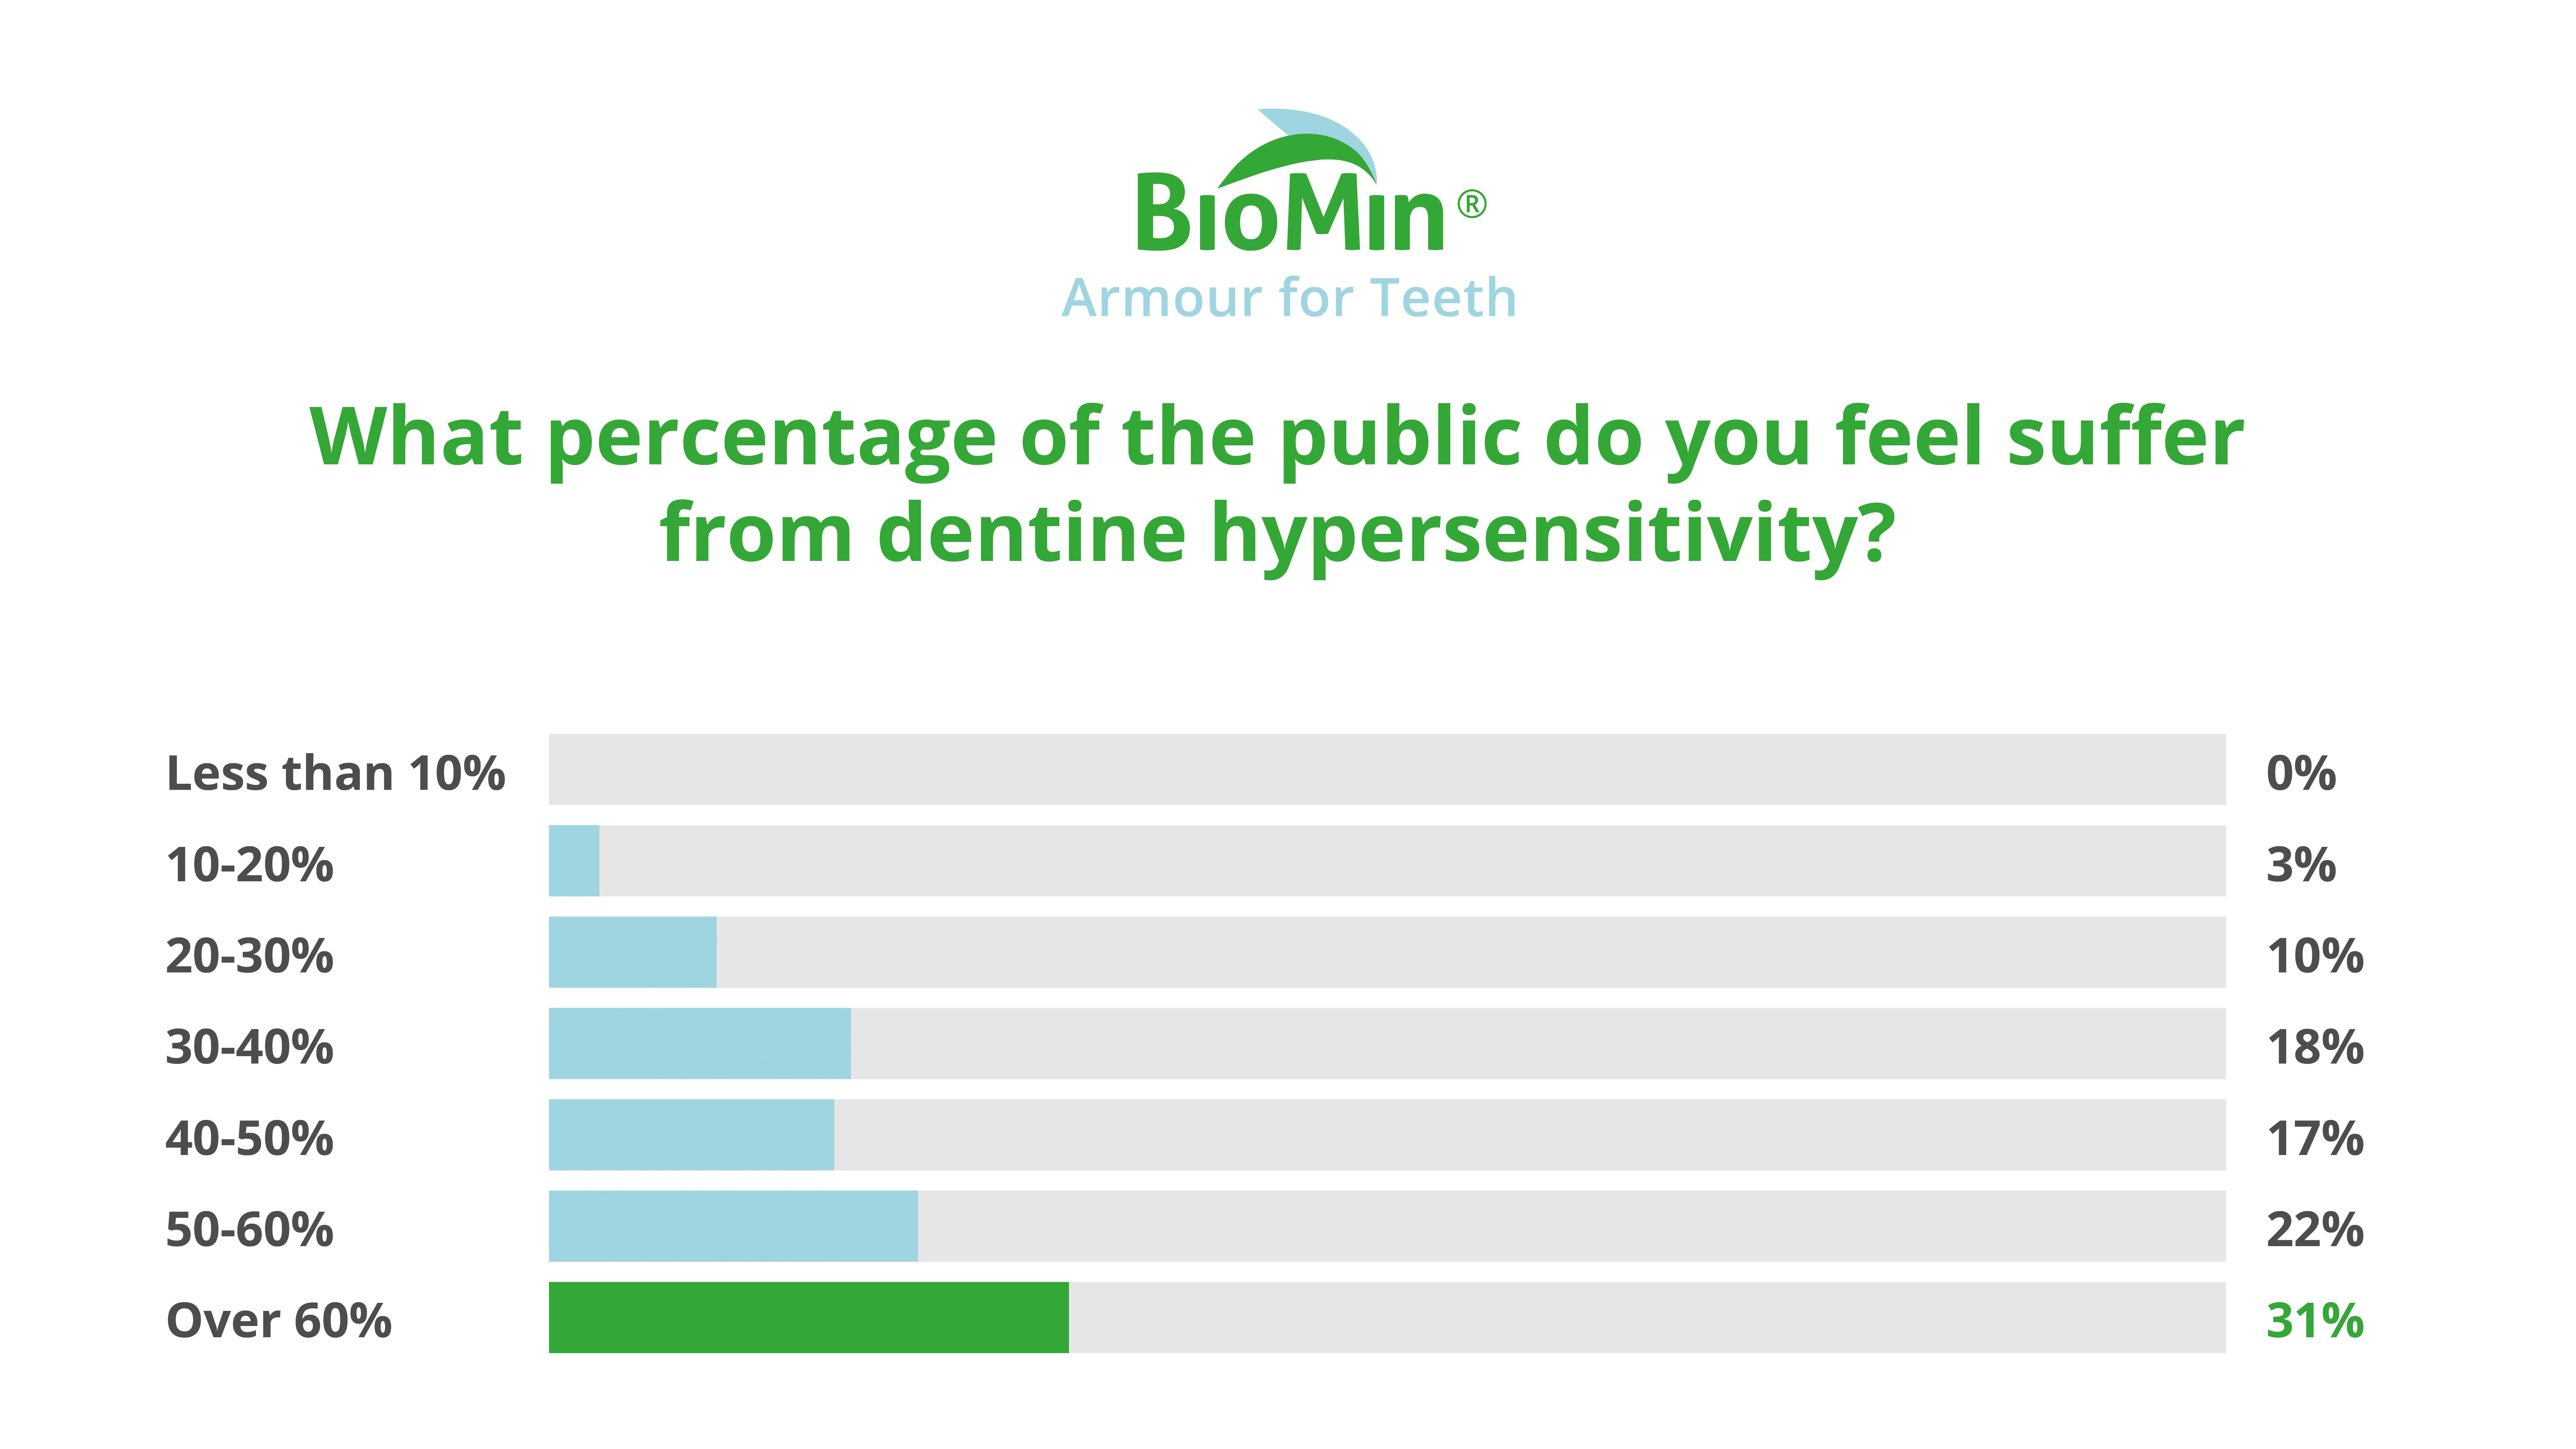 Dentine Hypersensitivity Poll 1 - What percentage of the public do you feel suffer from dentine hypersensitivity?